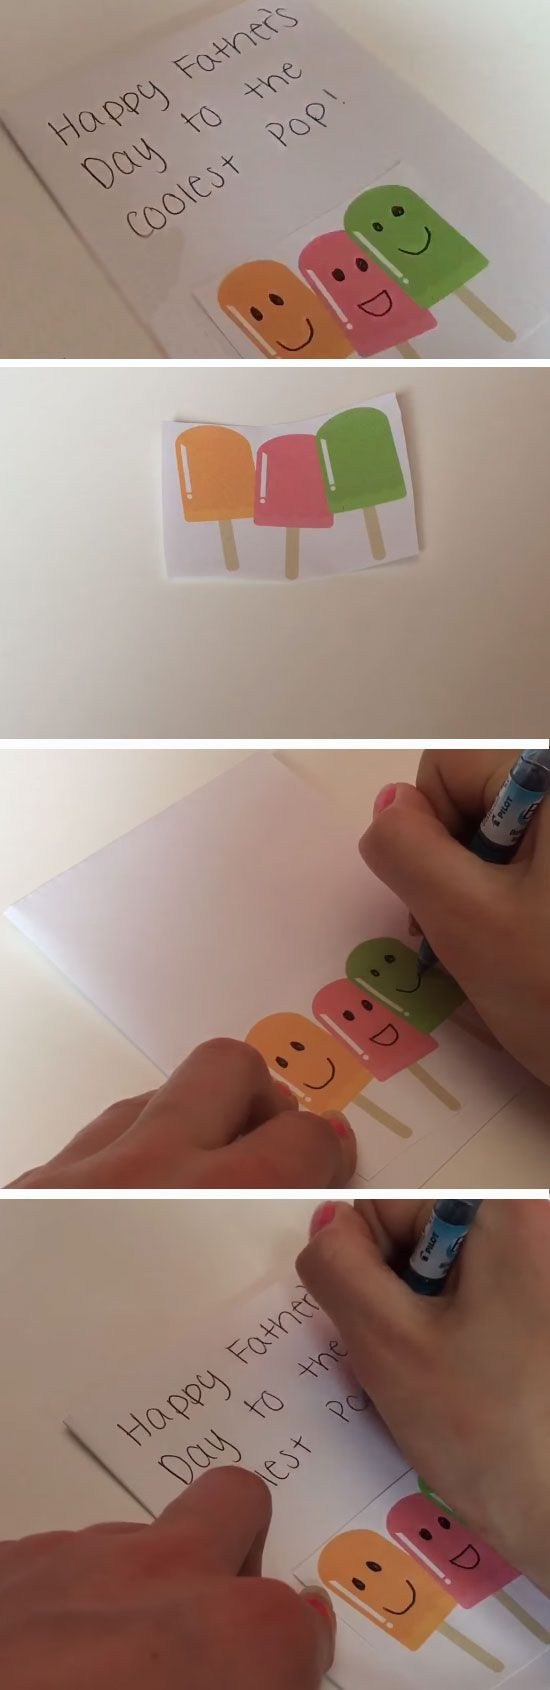 Coolest Pop | Easy Homemade Fathers Day Cards to Make | DIY Birthday Cards for D...